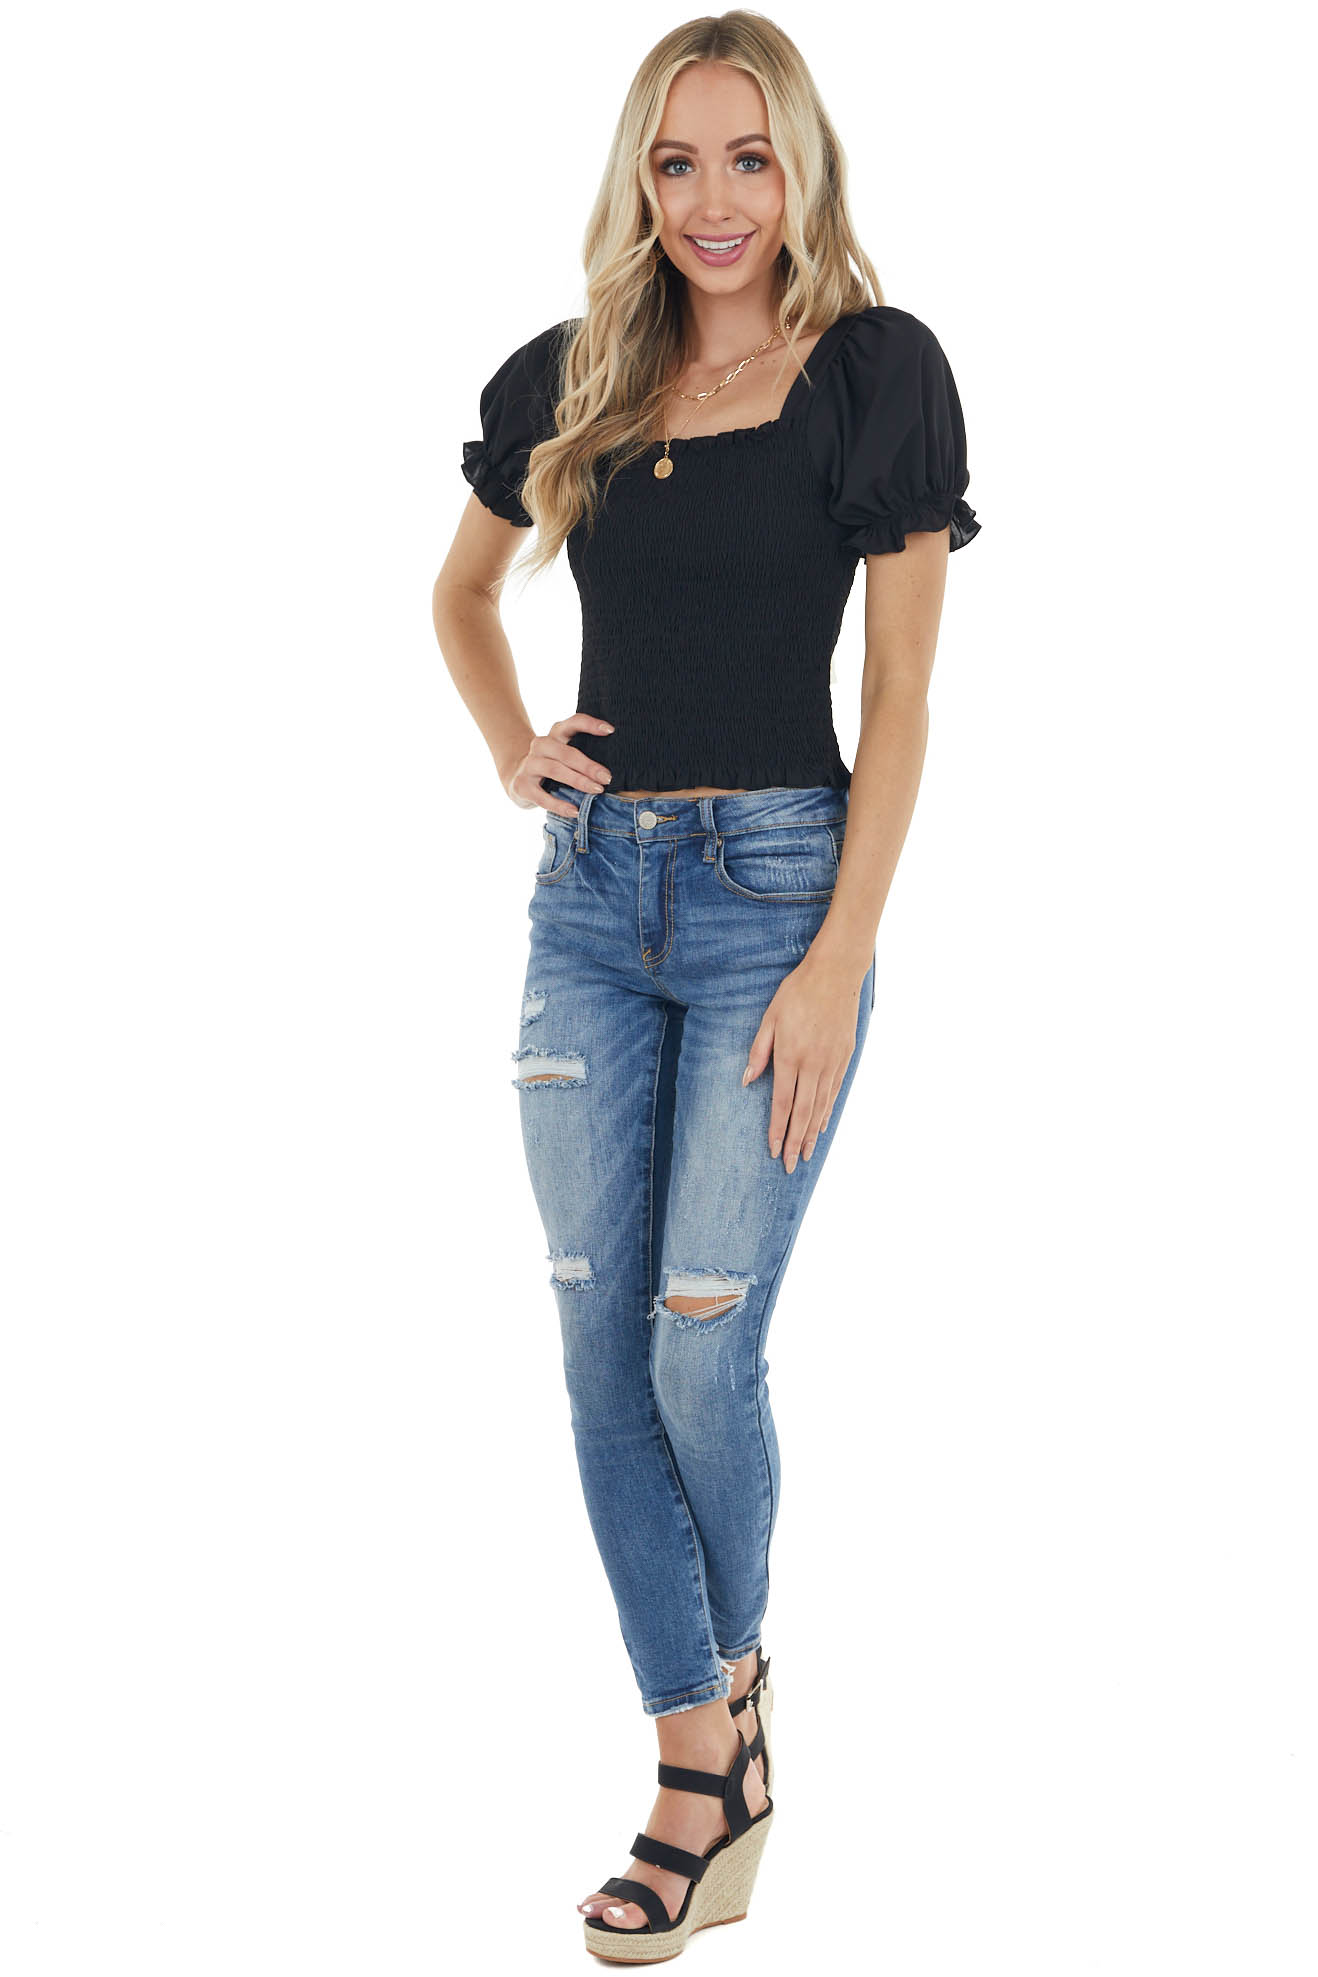 Black Textured Smocked Short Sleeve Top with Tie Detail